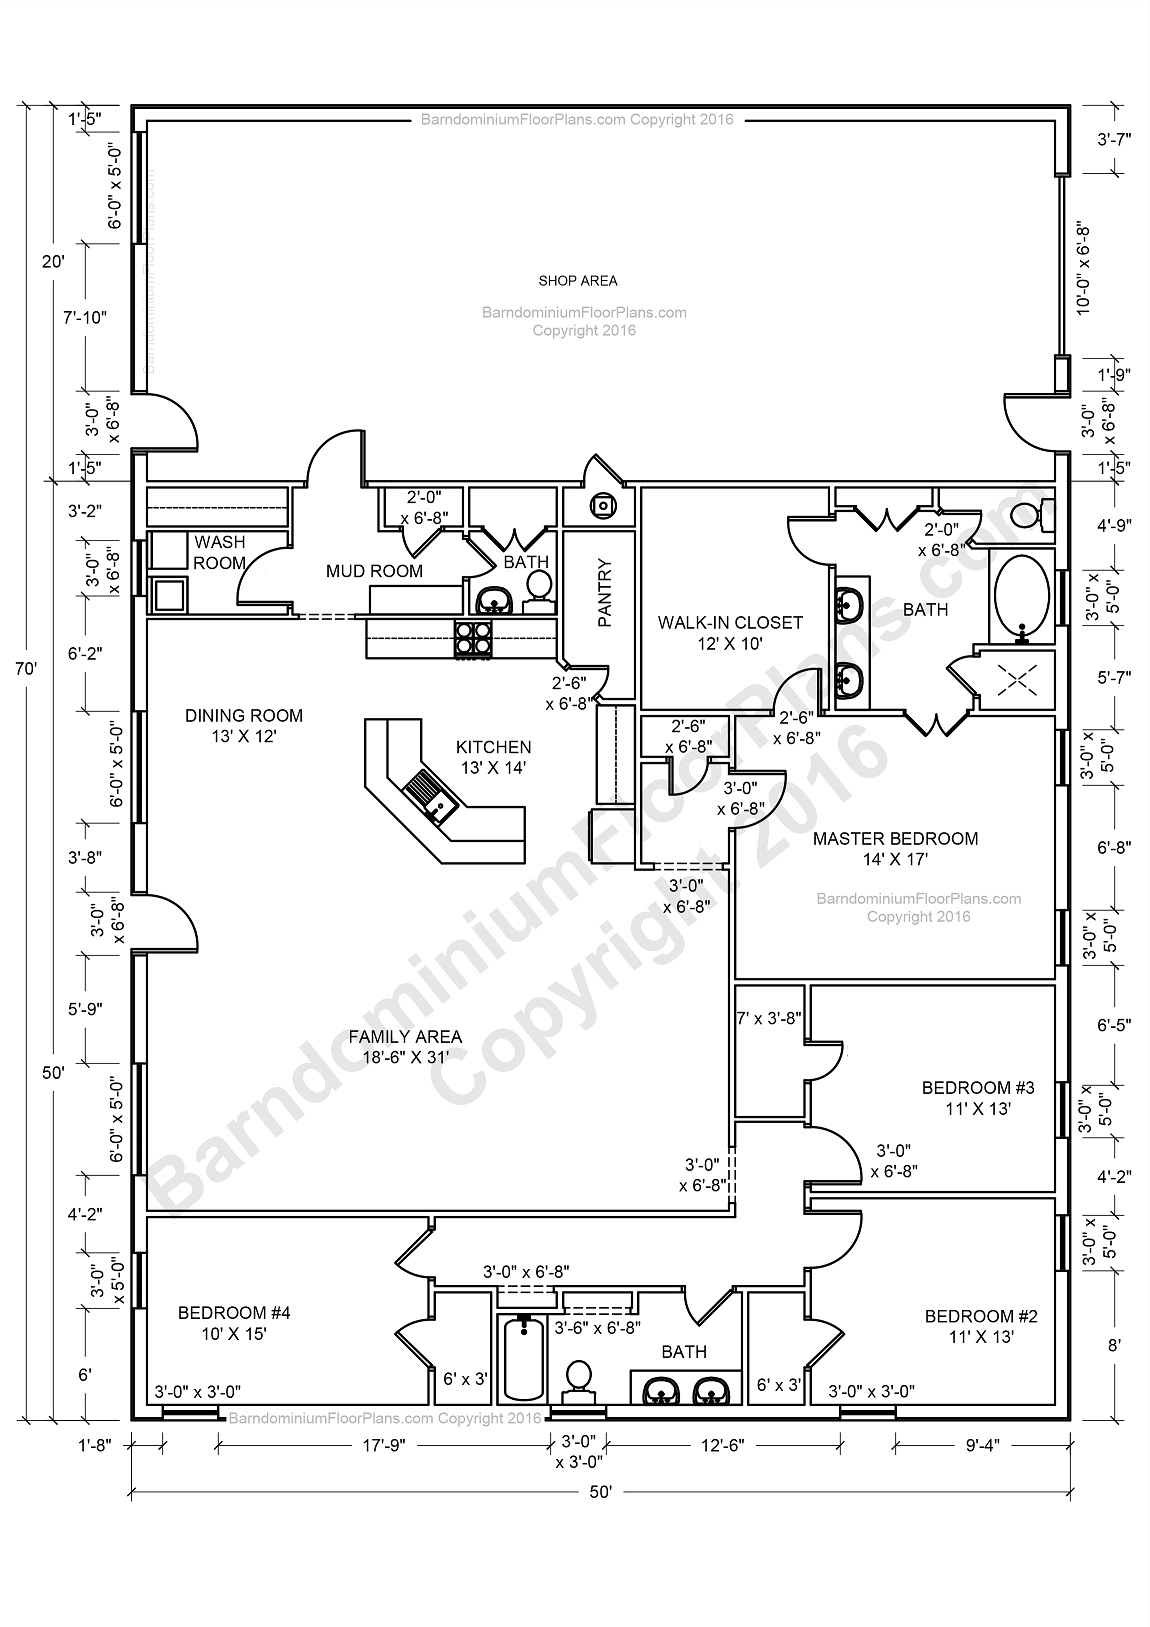 Barndominium floor plans barndominium floor plans 1 800 Shed home plans